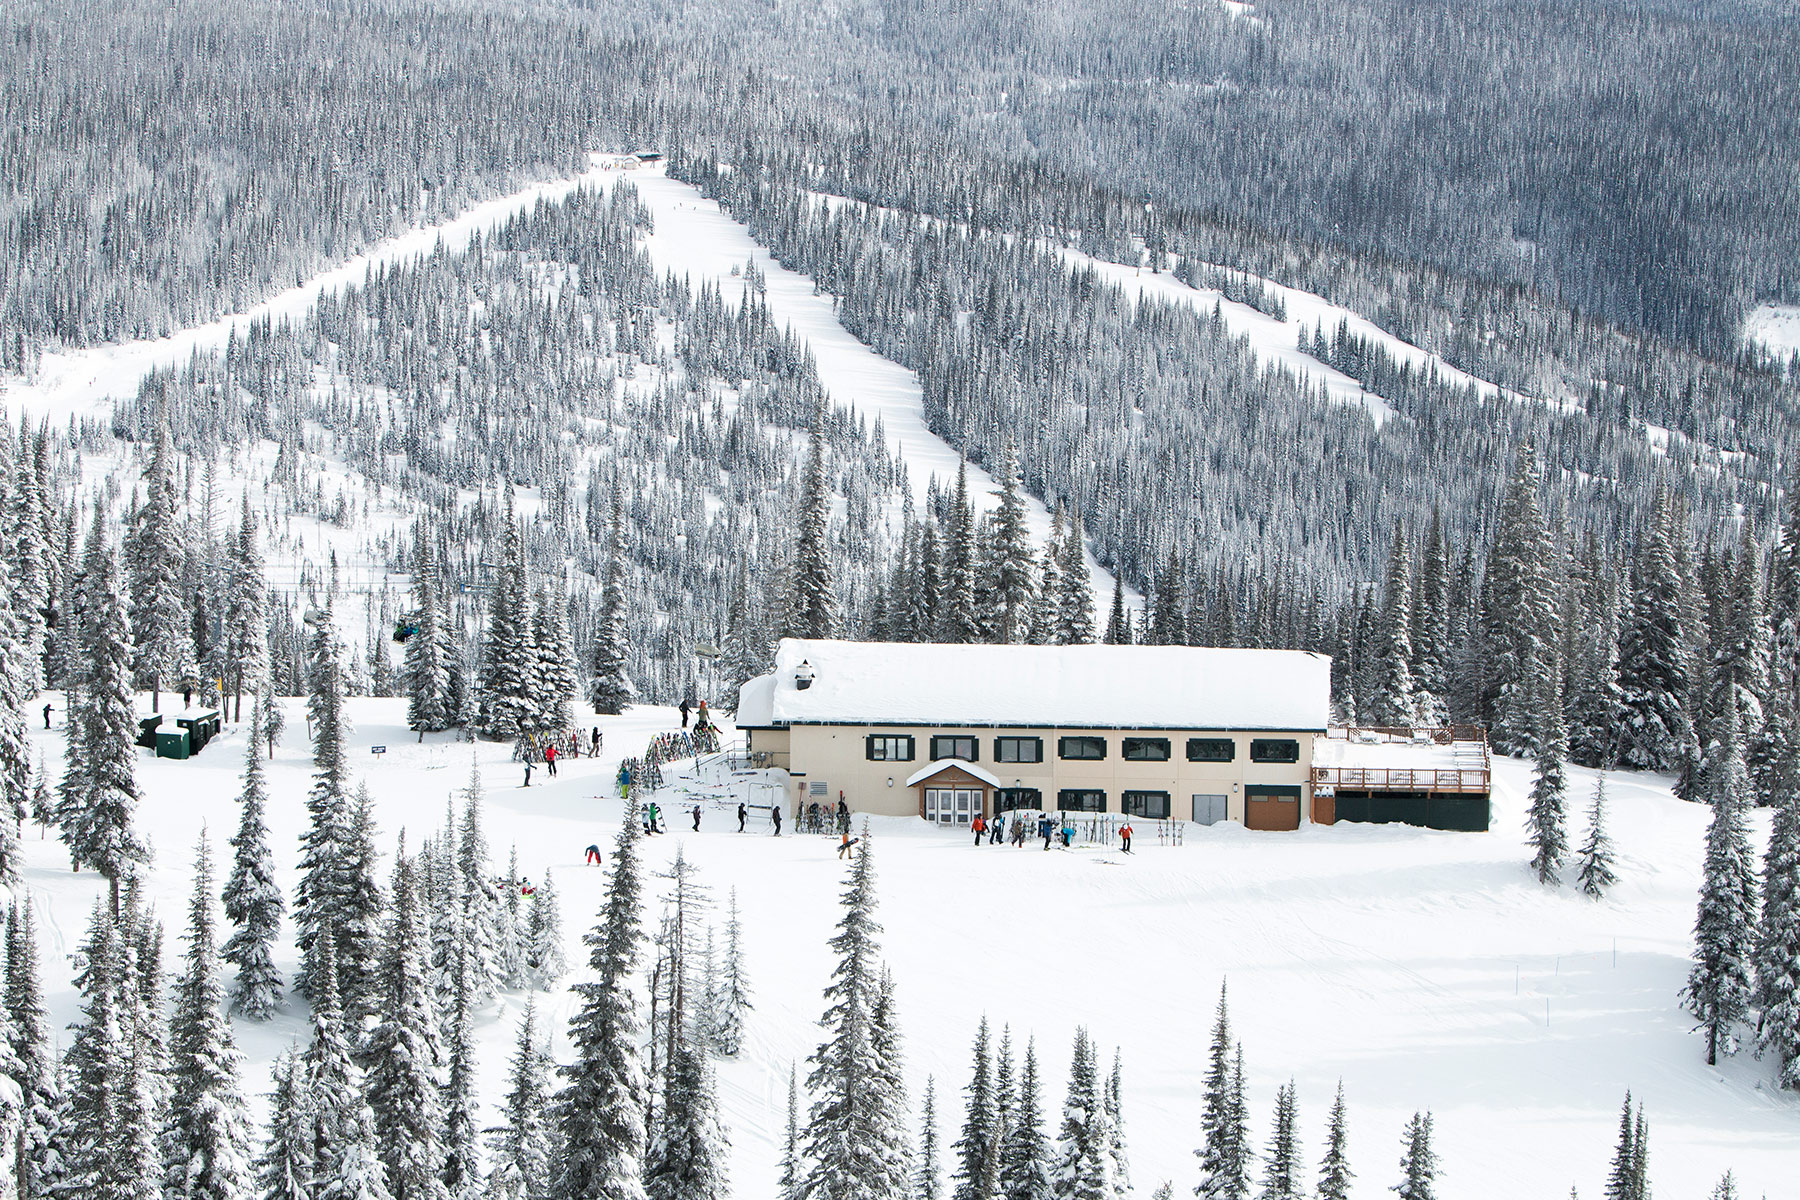 The Mid-Mountain Sunburst Lodge and Eatery at Sun Peaks Resort